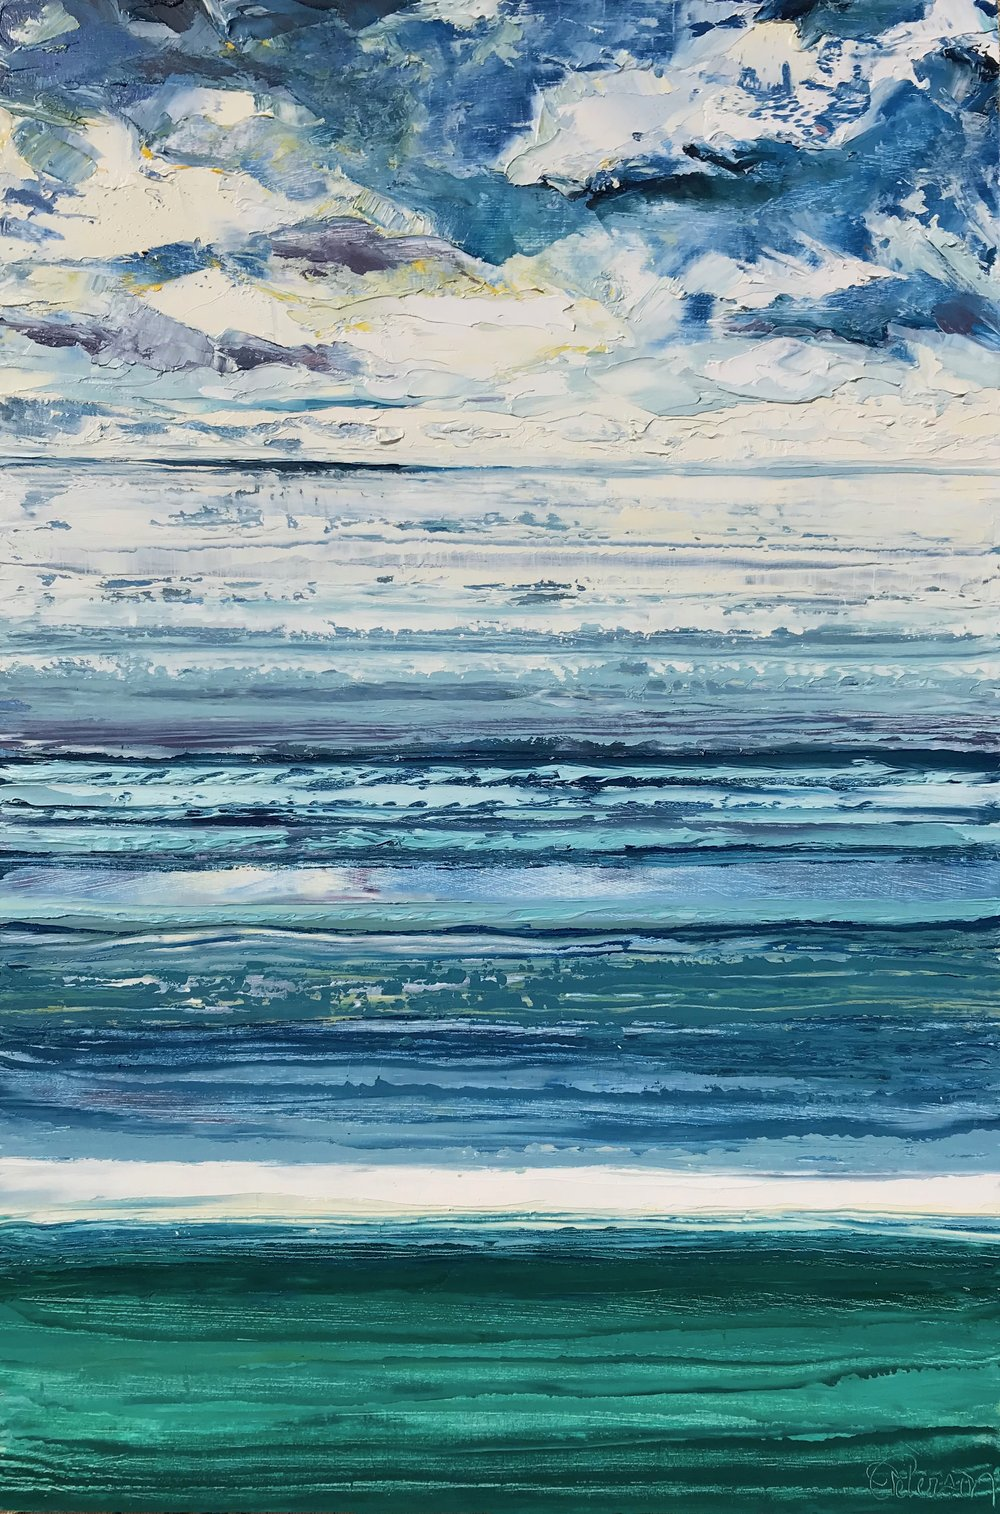 """""""Emerald Sea, Cloudy Day""""18x12 inch Oil on Canvas"""